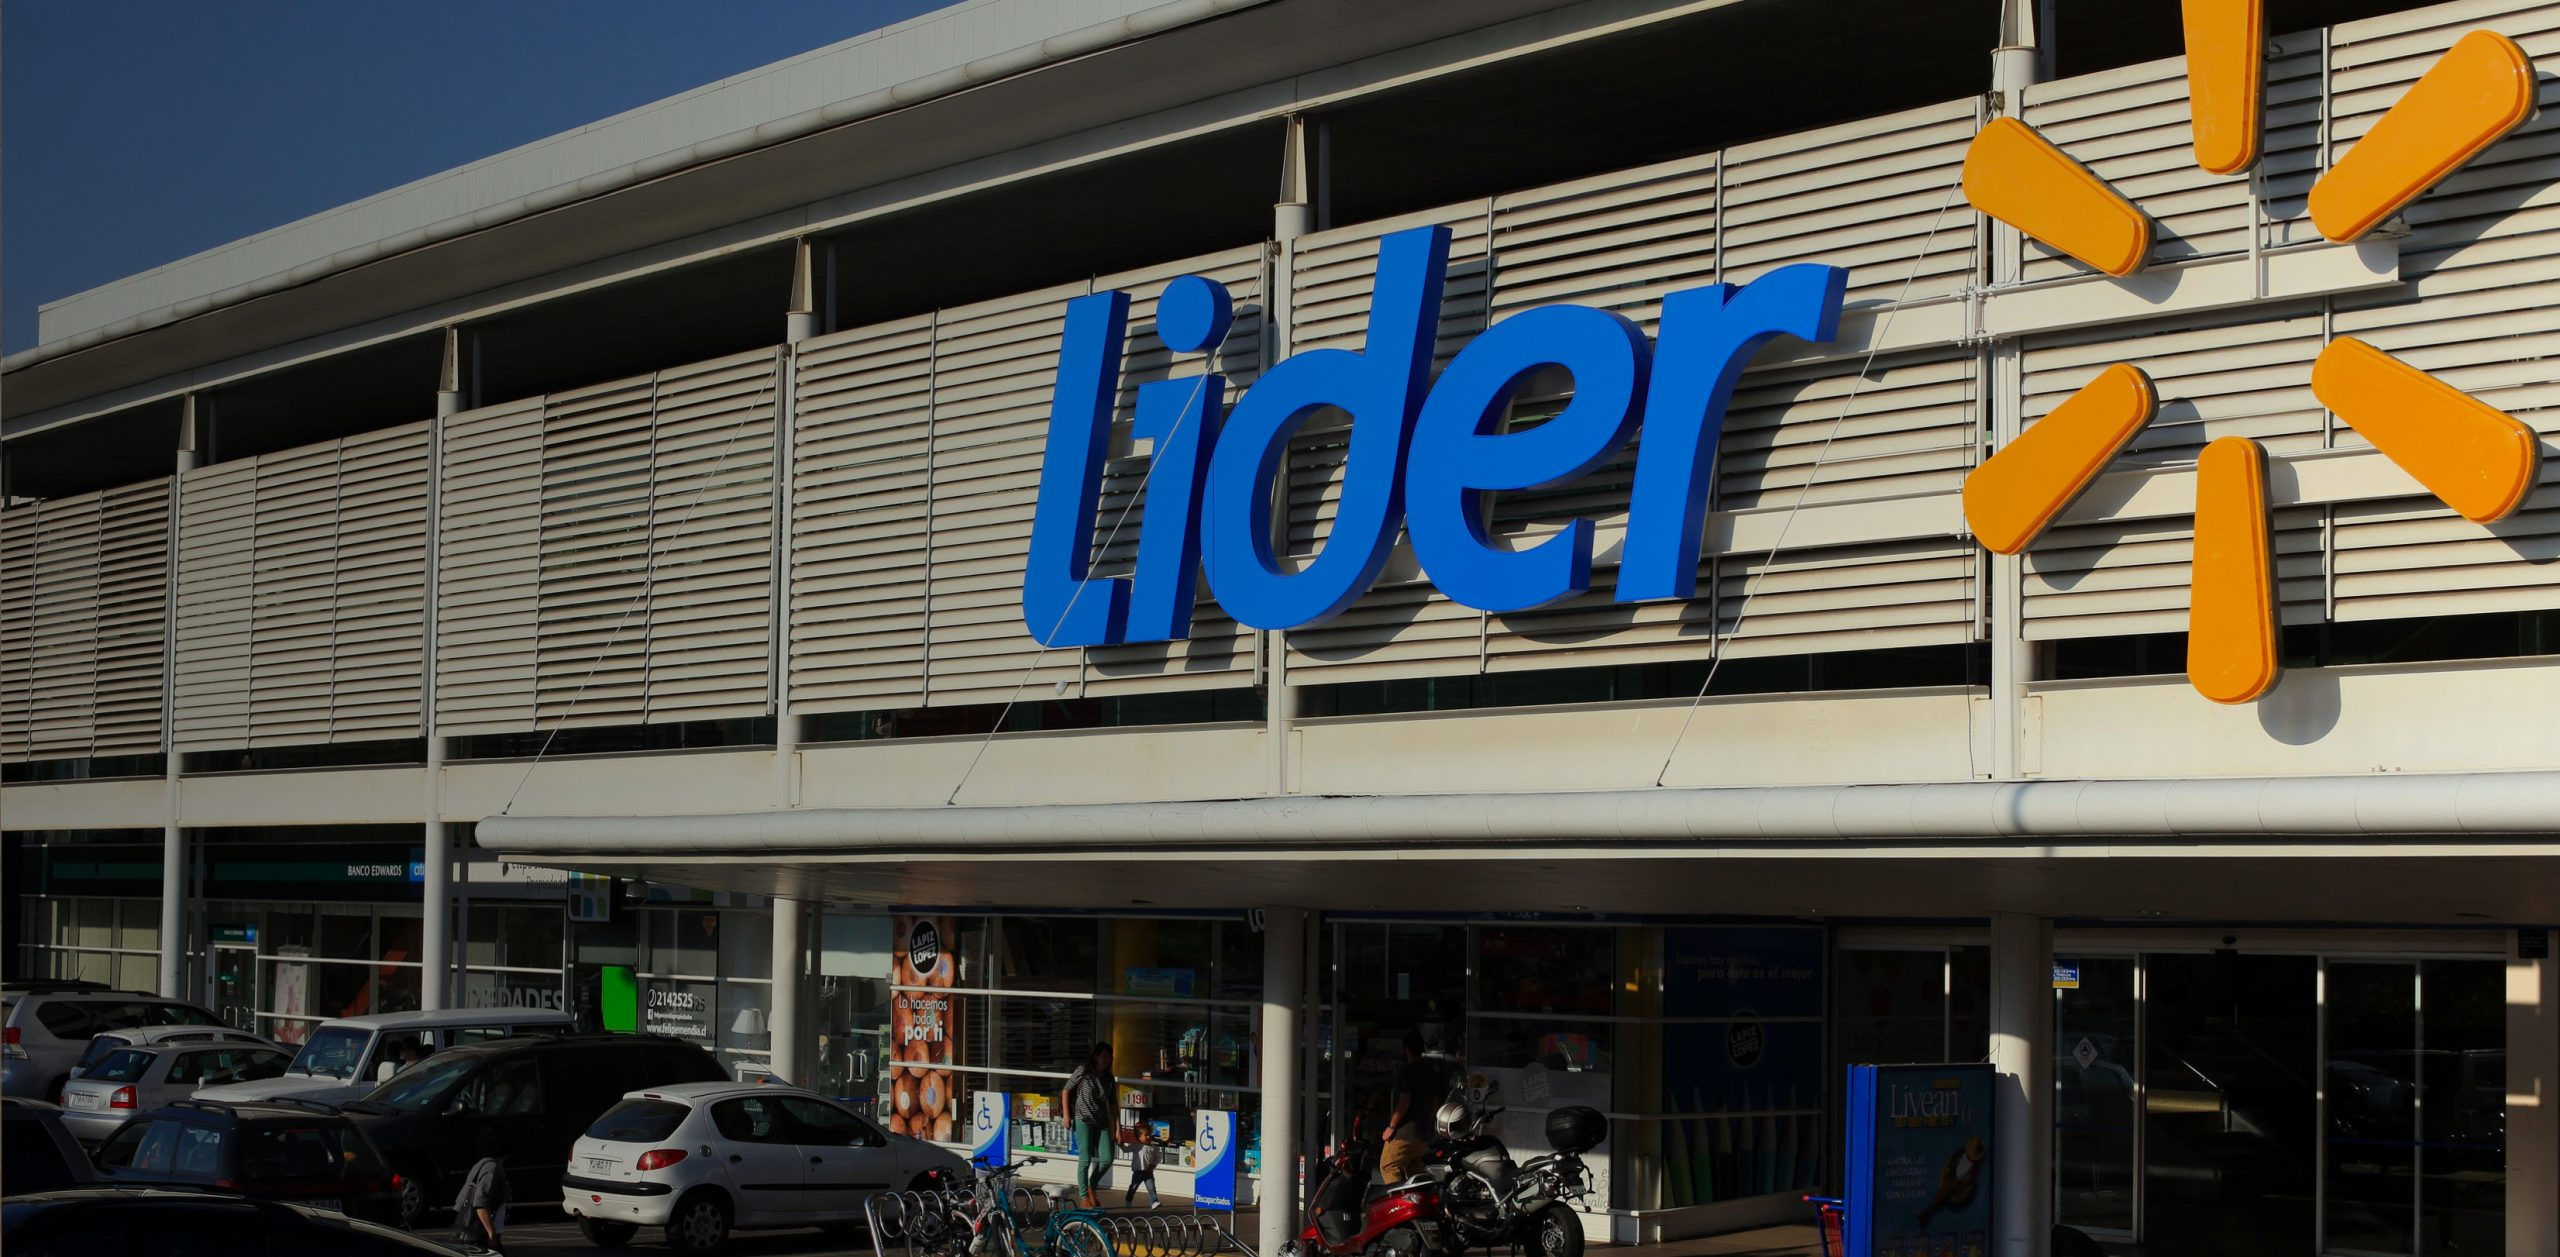 Image of a Lider store from the outside(Walmart in Chile)